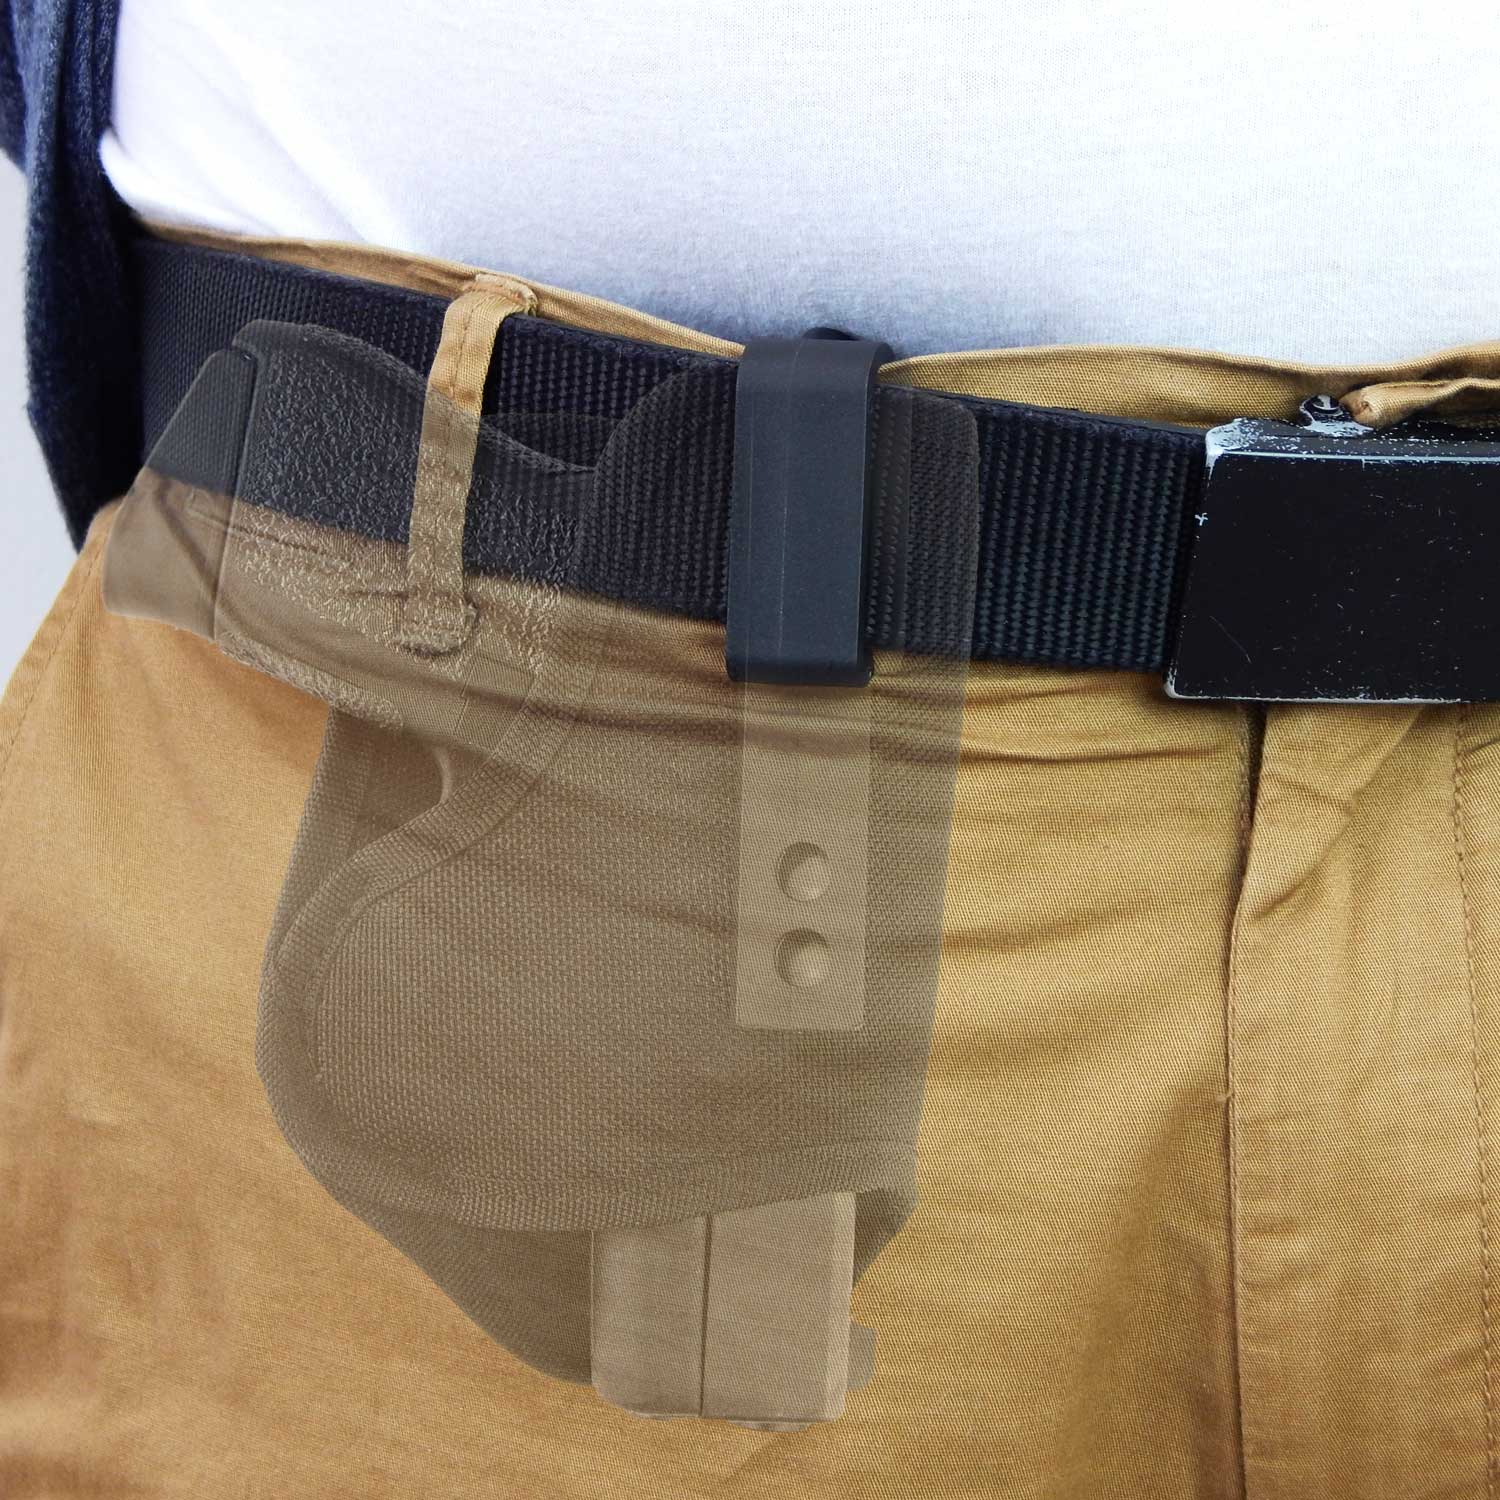 Concealed Carry Gun Holster IWB Push Draw